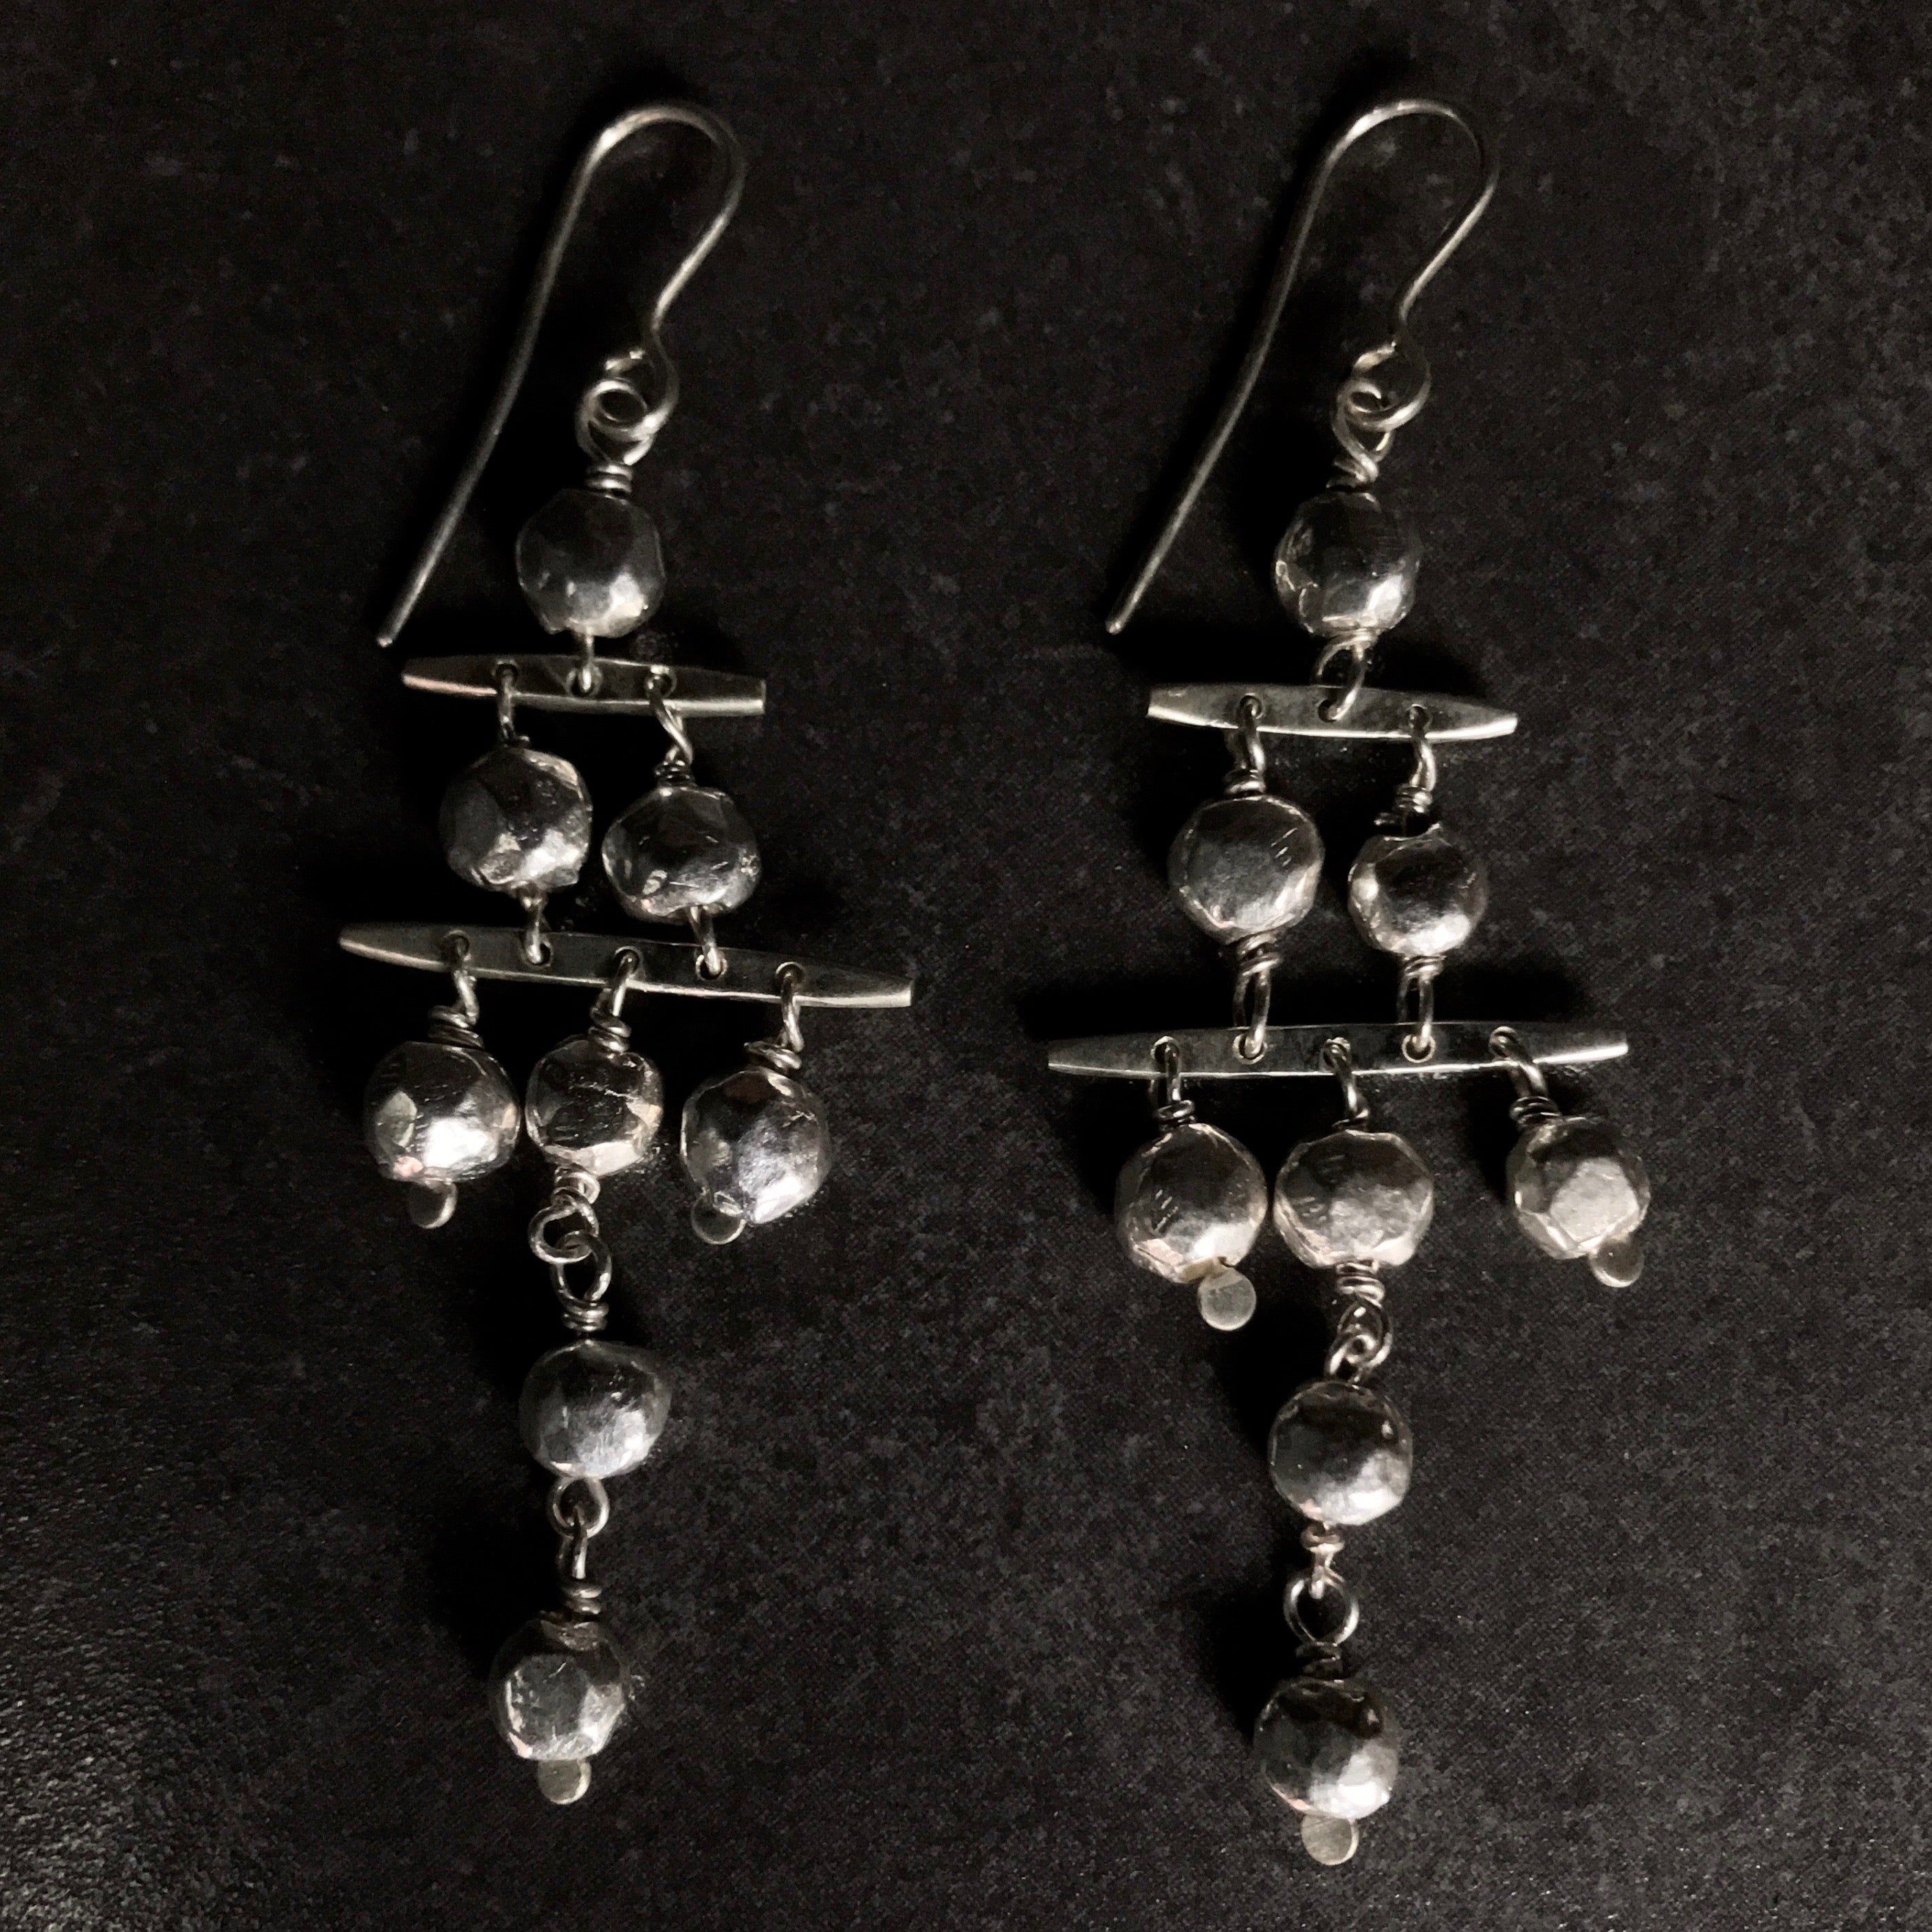 PICOLO0104 Chandelier Earrings  by herosisters - Luxury handmade silver jewelry and accessories